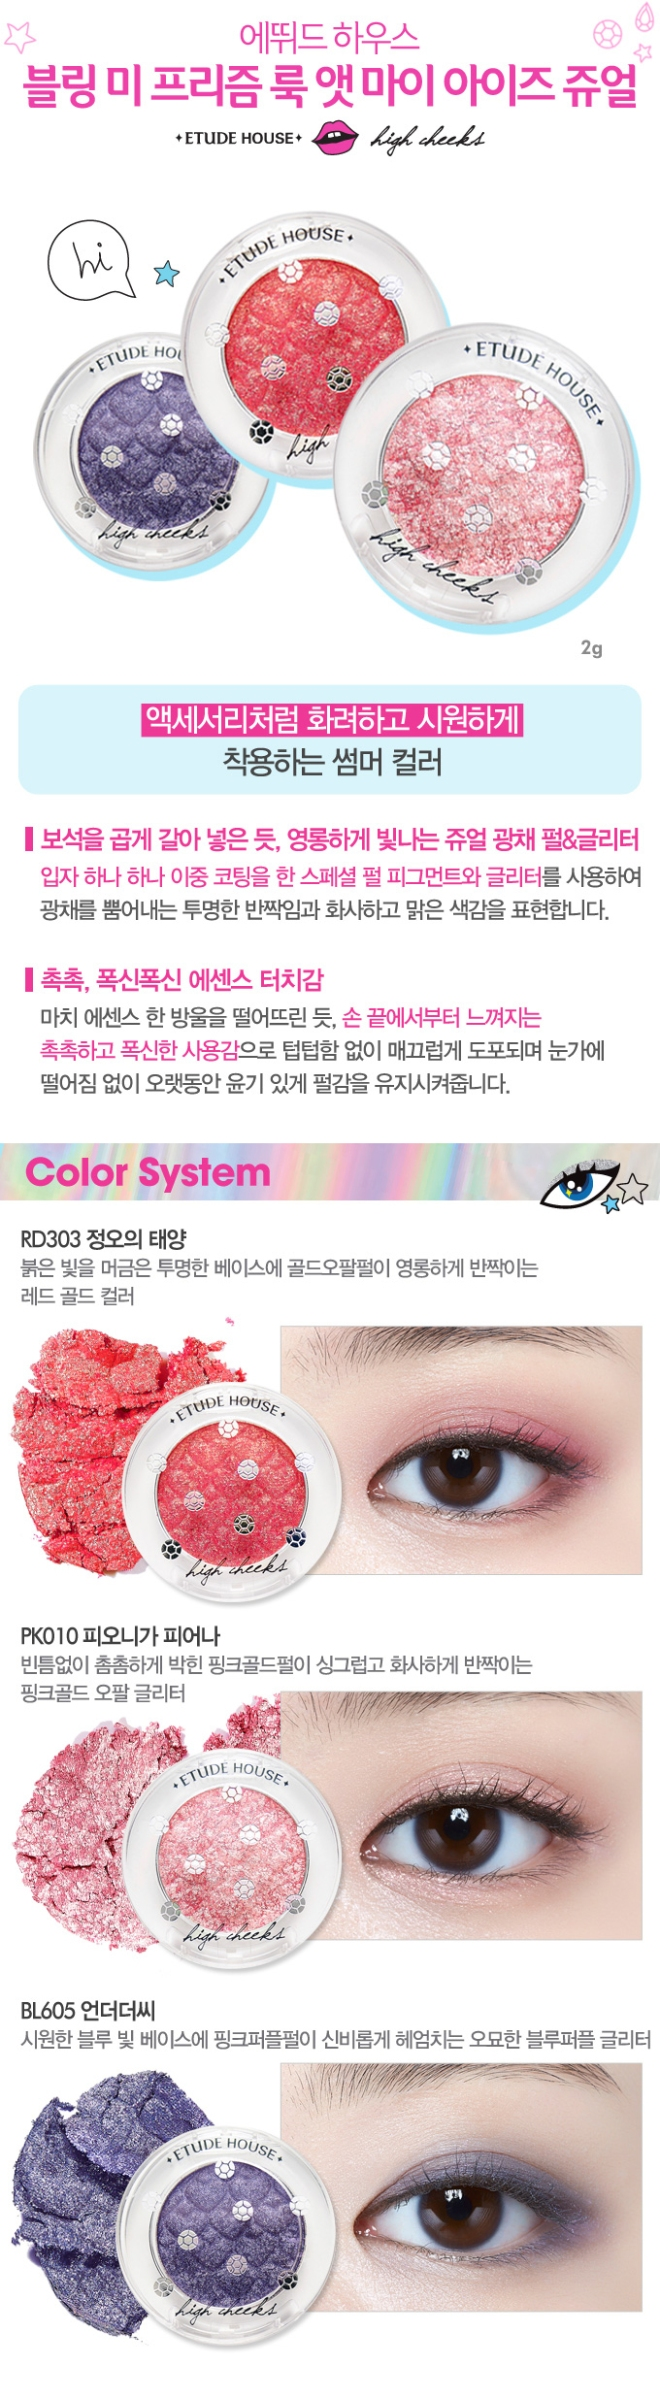 (Etude House x High Cheeks - Bling Me Prism Look At My Eyes Jewel) Credit: Etude House Korea website